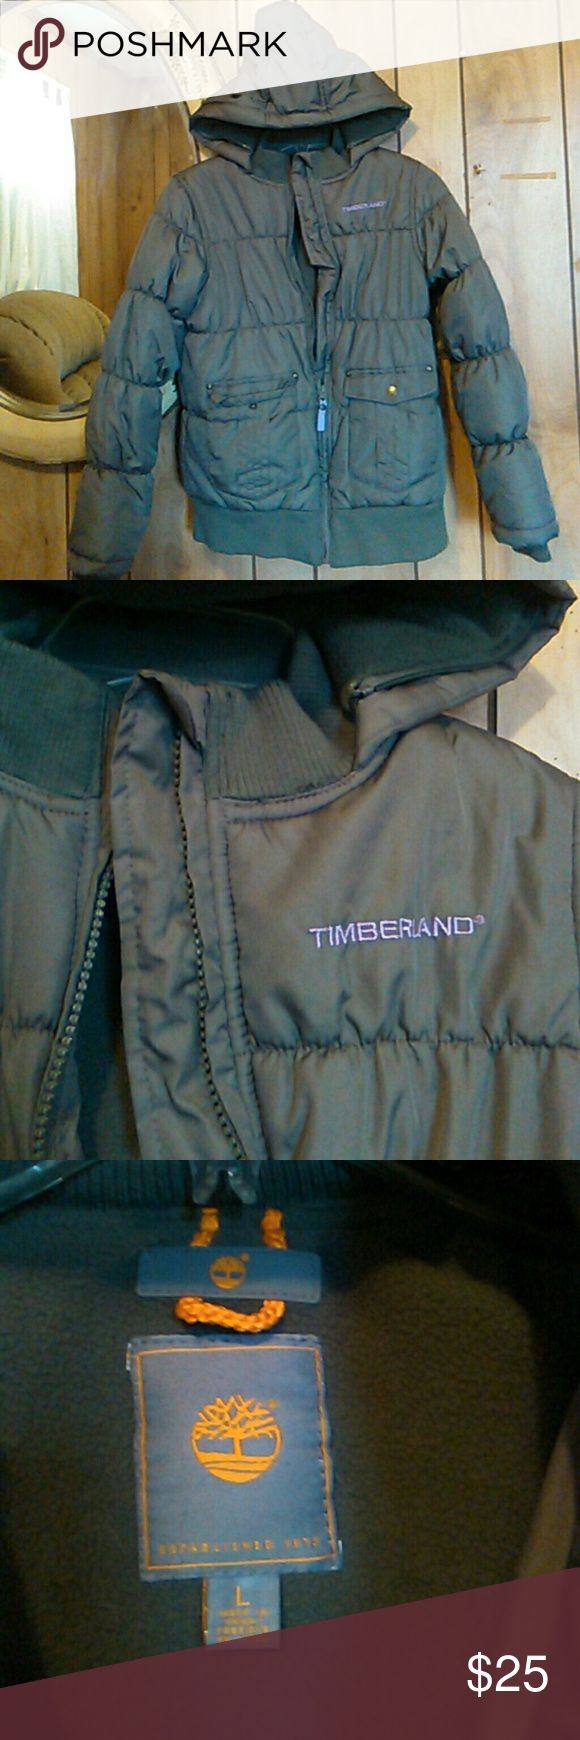 Boys/girls Timberland hooded puffer coat Super soft material.new condition.Size large Timberland Jackets & Coats Puffers